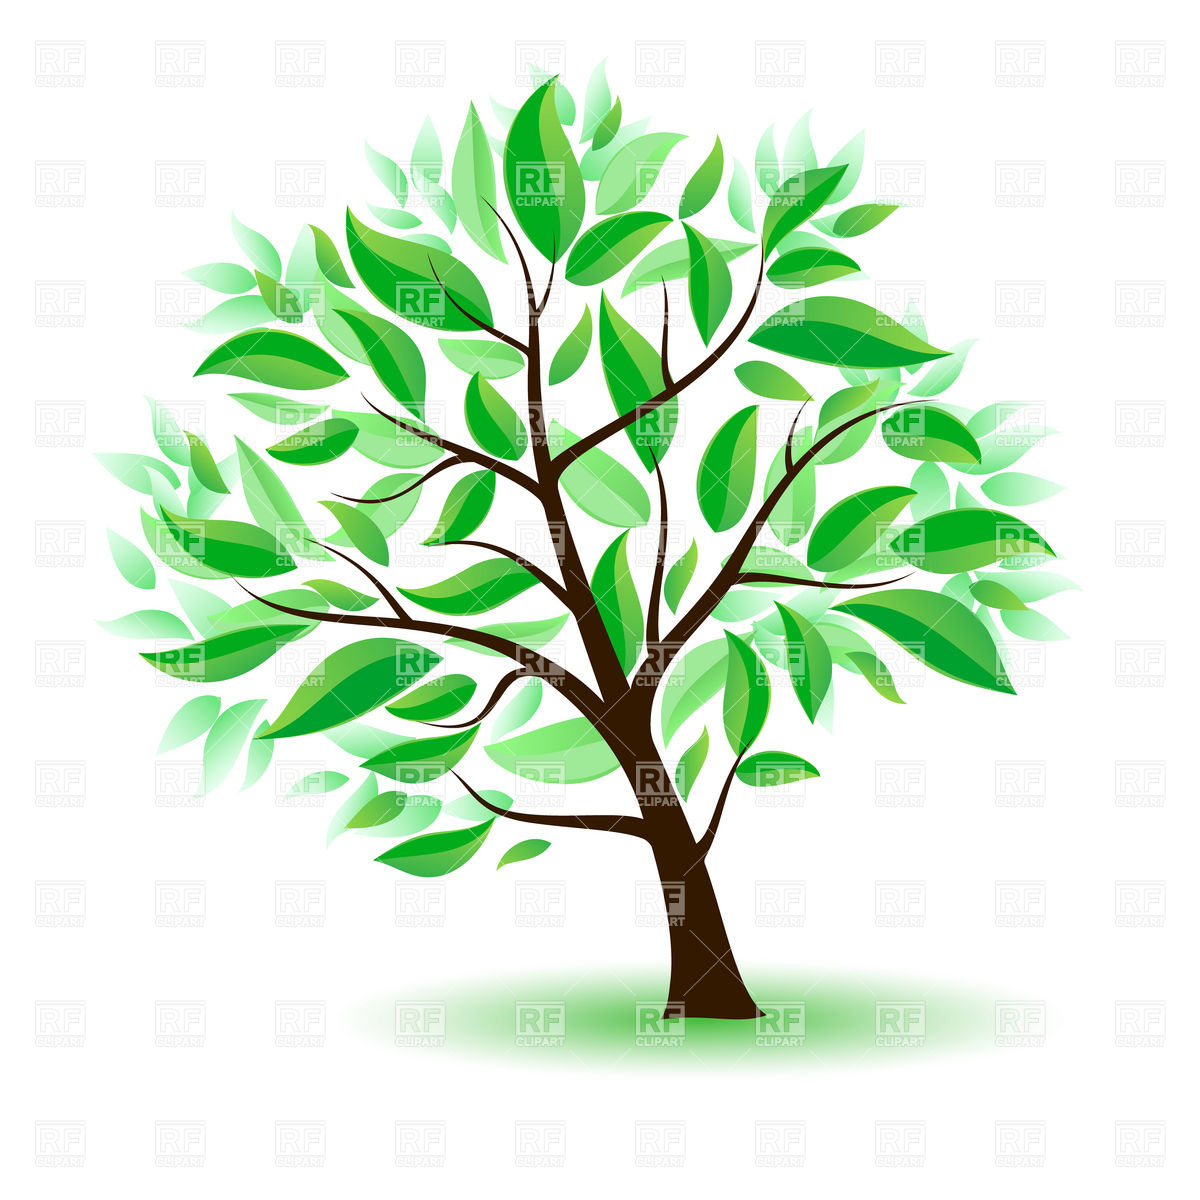 1200x1200 Challenge Cartoon Picture Of A Tree With Green Leaves Royalty Free